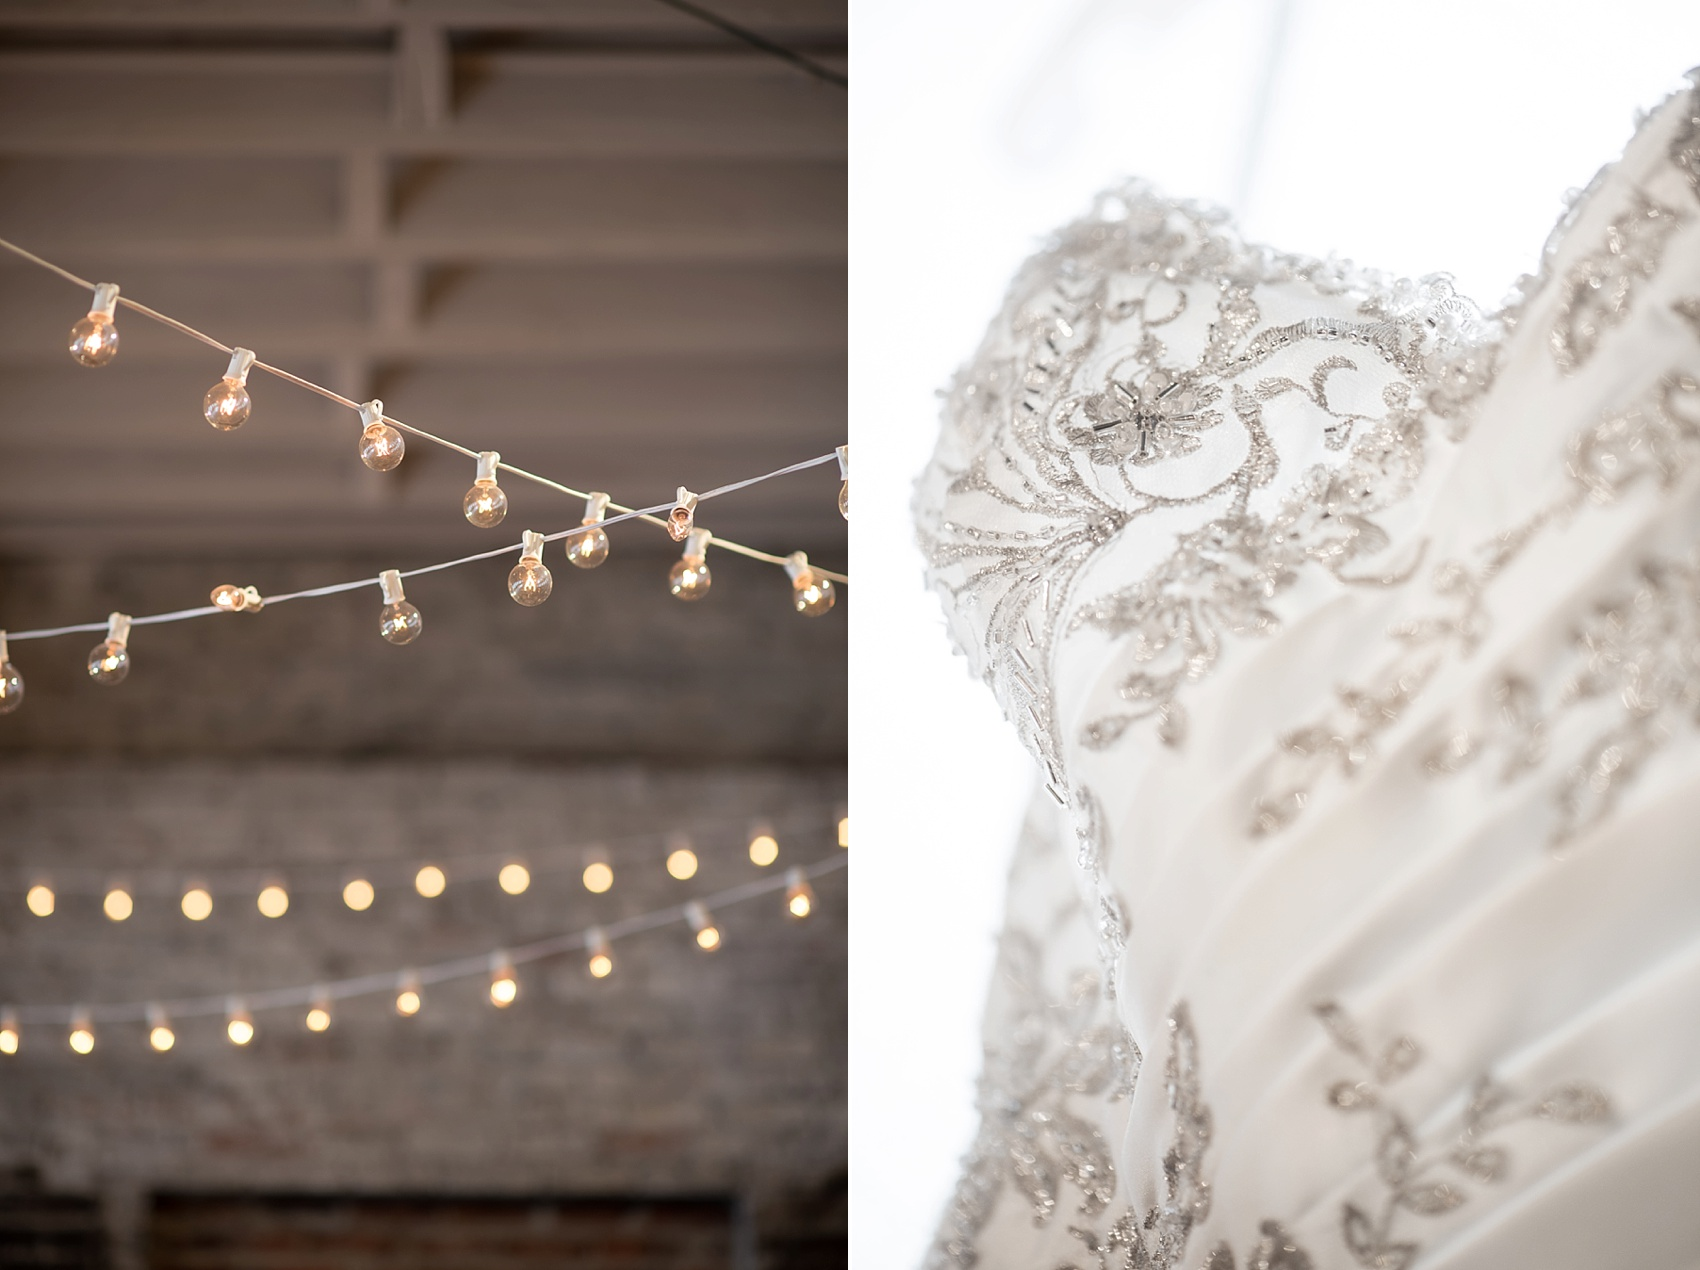 Raleigh wedding photographer Mikkel Paige Photography captures the wedding gown at The Stockroom.